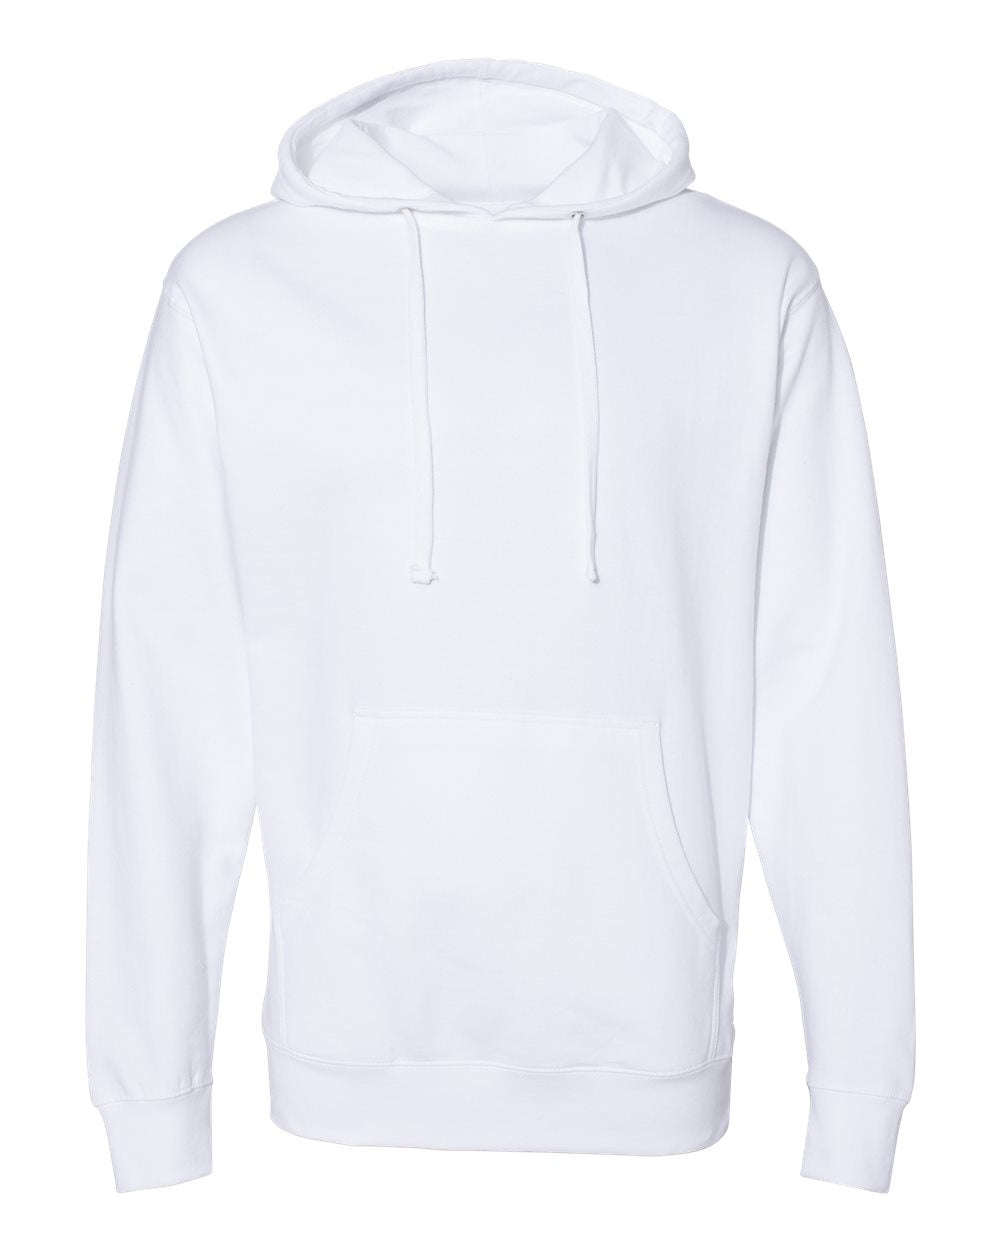 Independent Pullover Hooded Sweatshirt,Ink That Apparel